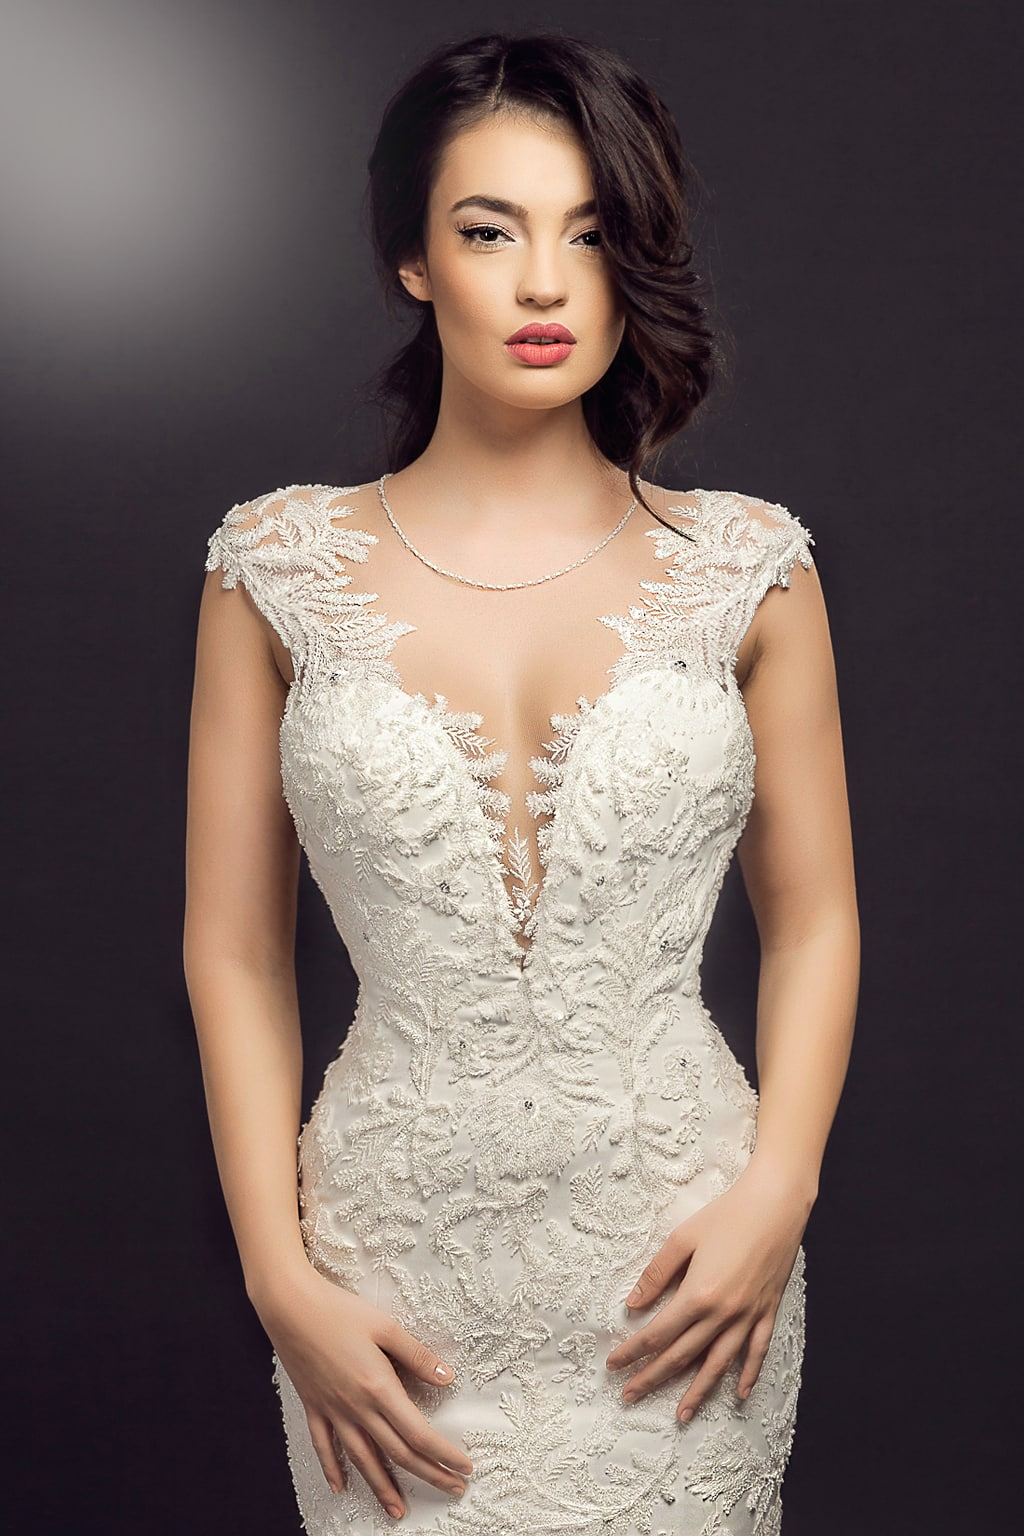 Paloma Model - Colectia Dreams - Adora Sposa (2)